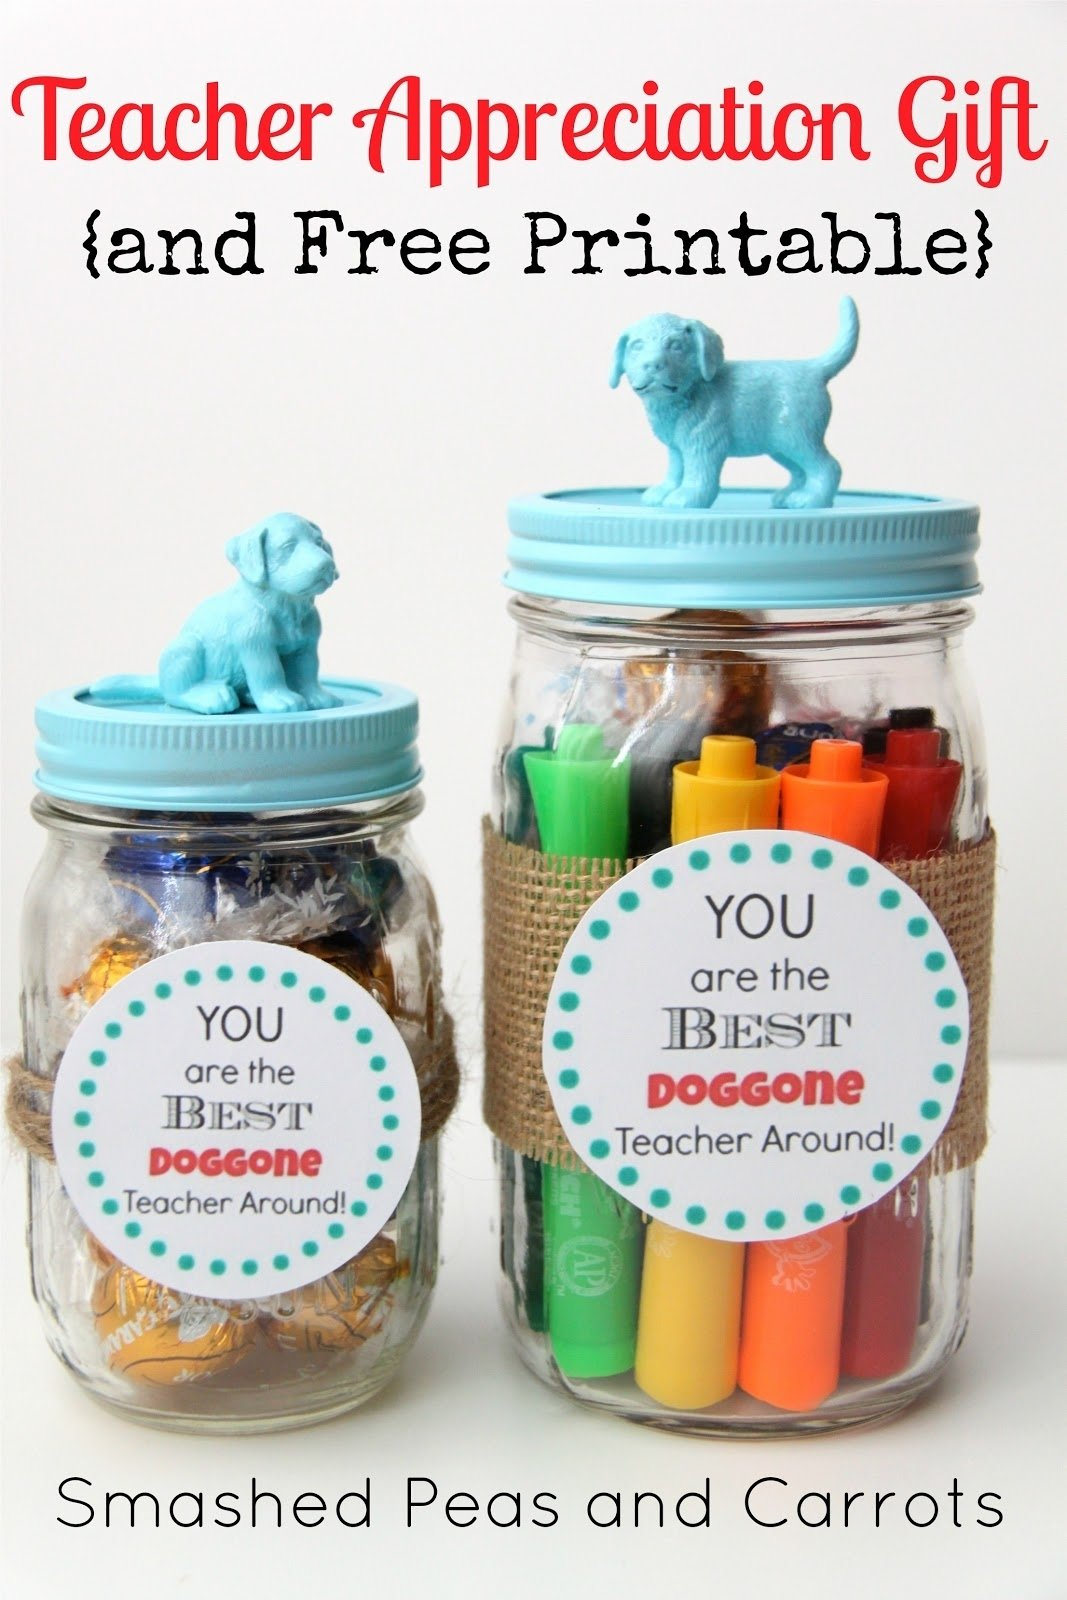 10 Cute Teachers Appreciation Week Gift Ideas tutorial teacher appreciation gift and free printable smashed 2020